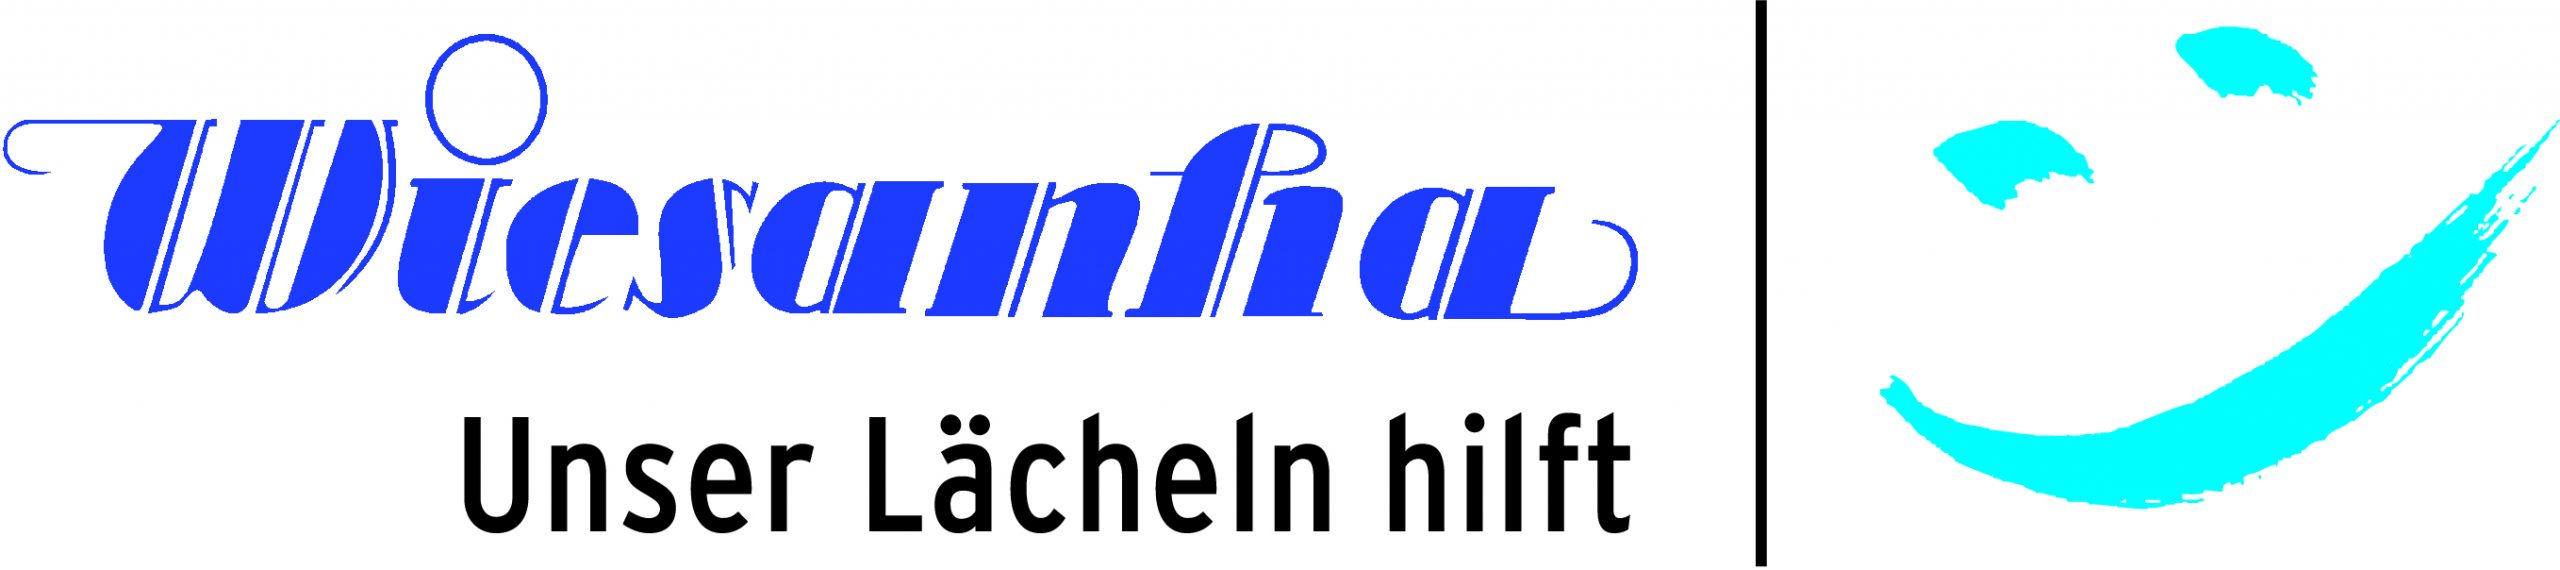 1904_wiesanha_logo_final